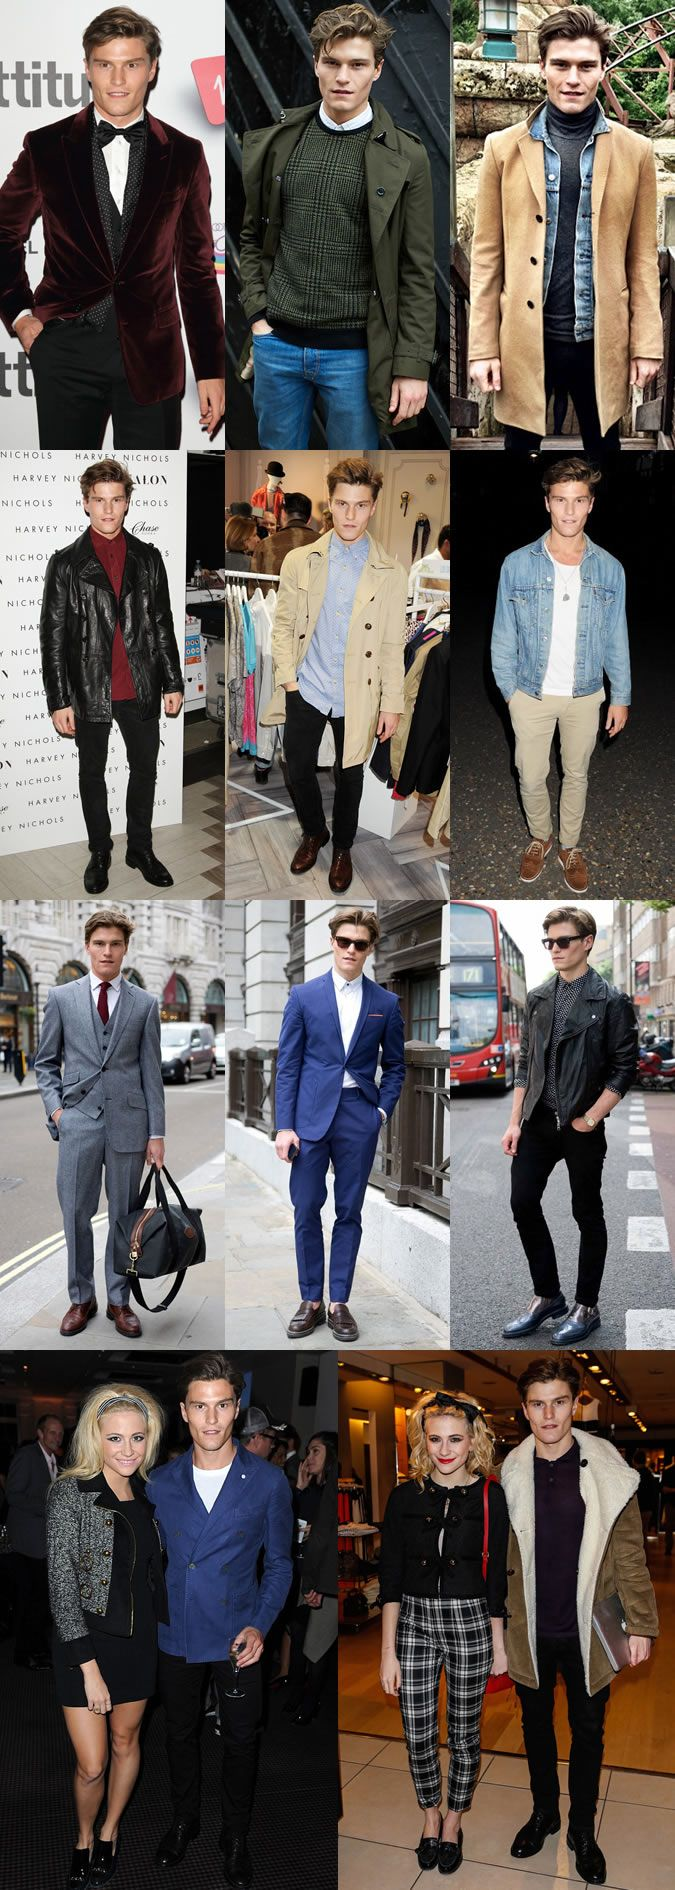 Mr Oliver Cheshire Someone who is currently making fashionable waves both at home and abroad.